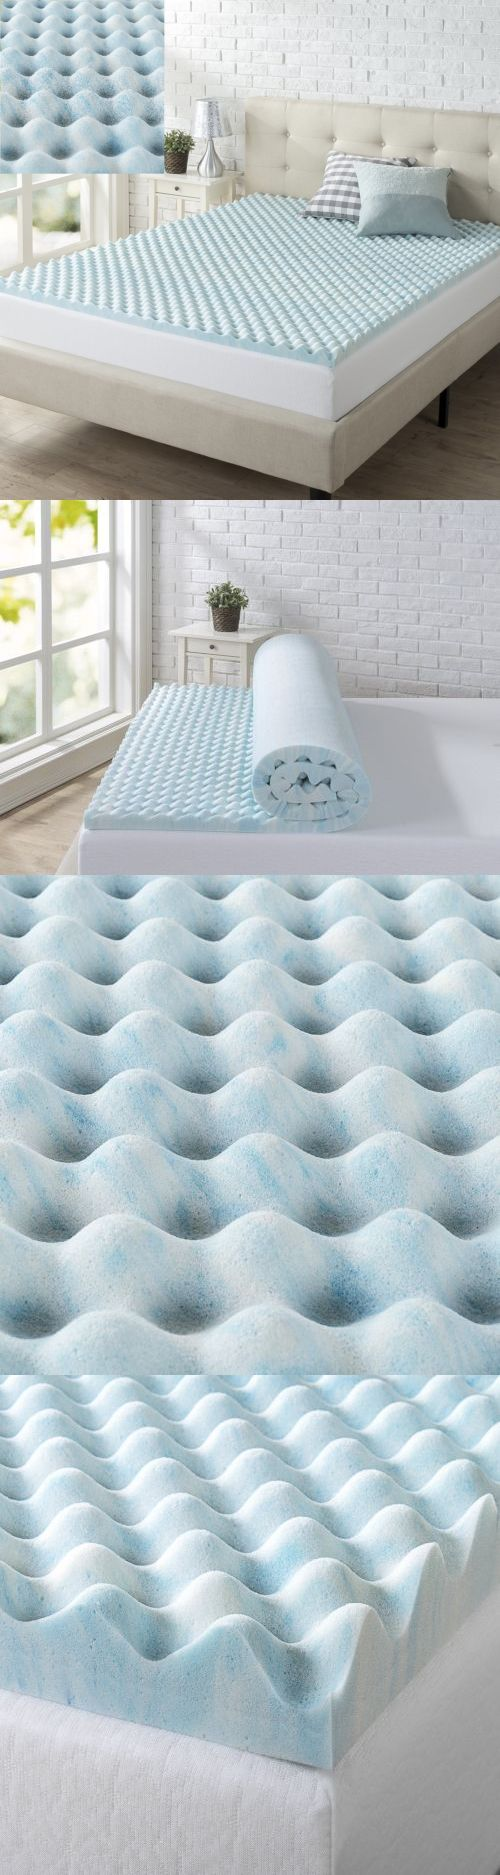 Mattress Pads and Feather Beds 175751: Memory Foam Topper Twin Size Mattress  Cooling Gel Orthopedic